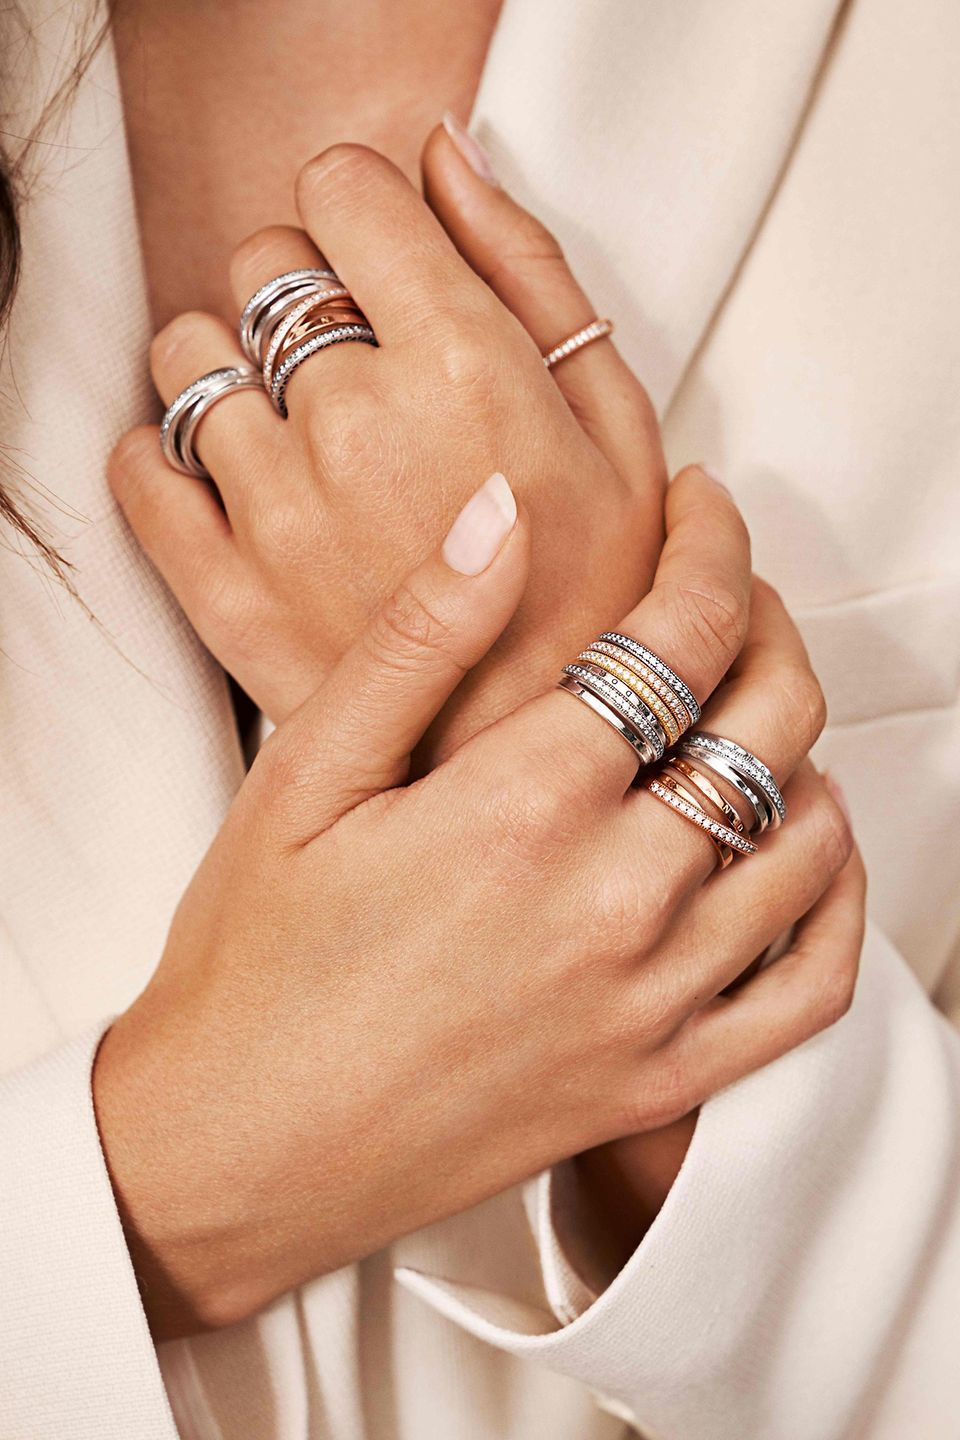 A model's hands wearing Pandora stackable rings in sterling silver and Pandora Rose